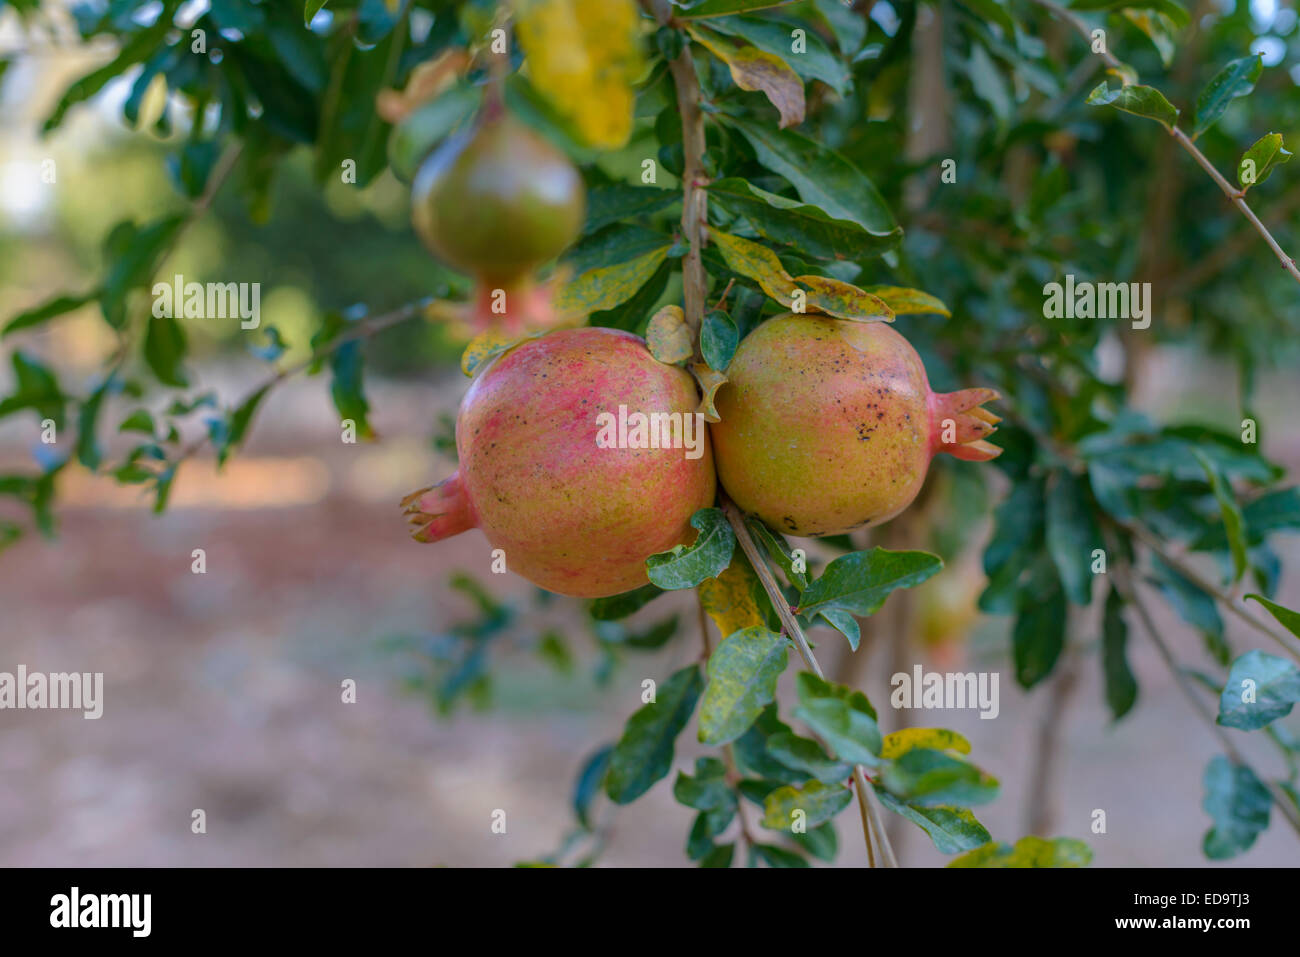 Pomegranate tree with ripe fruit ready for harvest - Stock Image